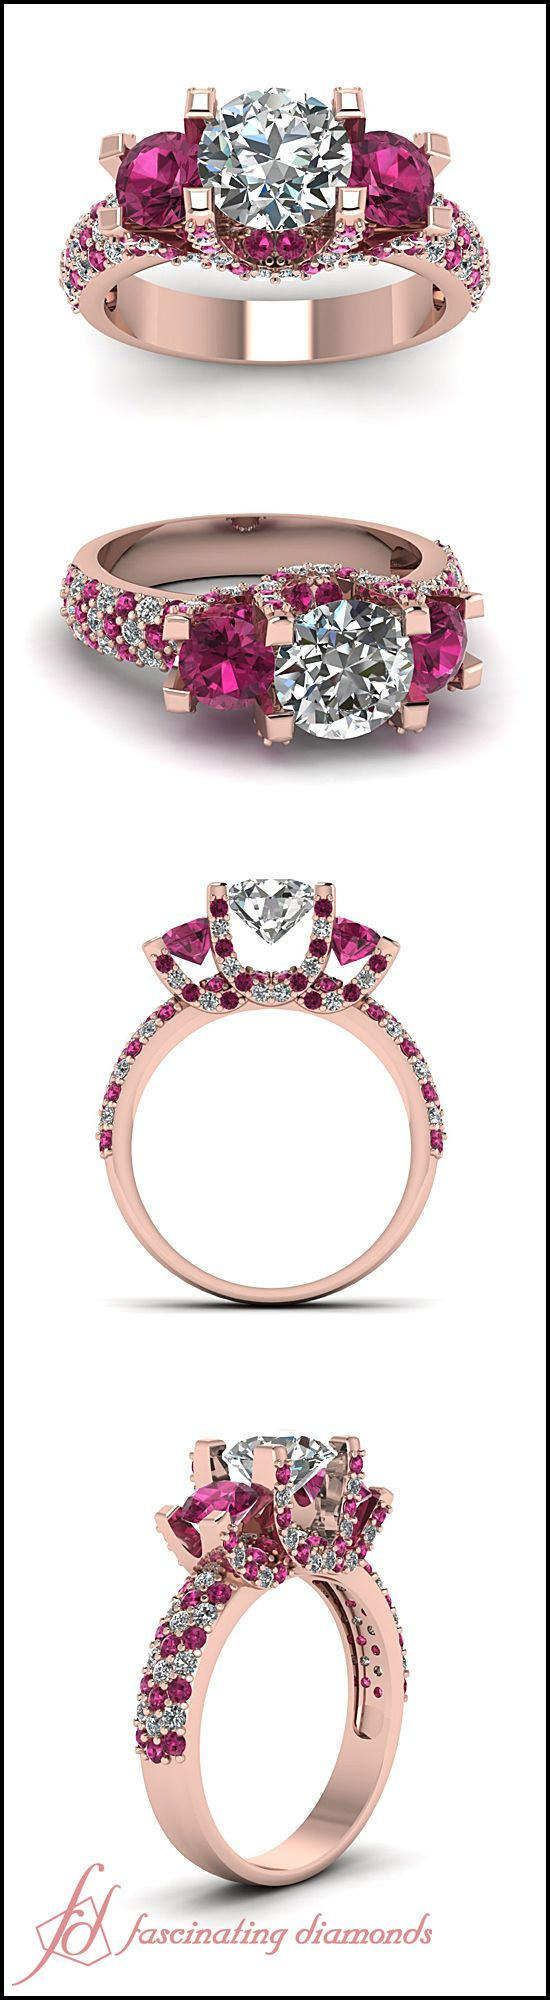 Round Cut Diamond Side Stone Ring With Pink Sapphire In 14K Rose Gold via Jewelry in My Box.